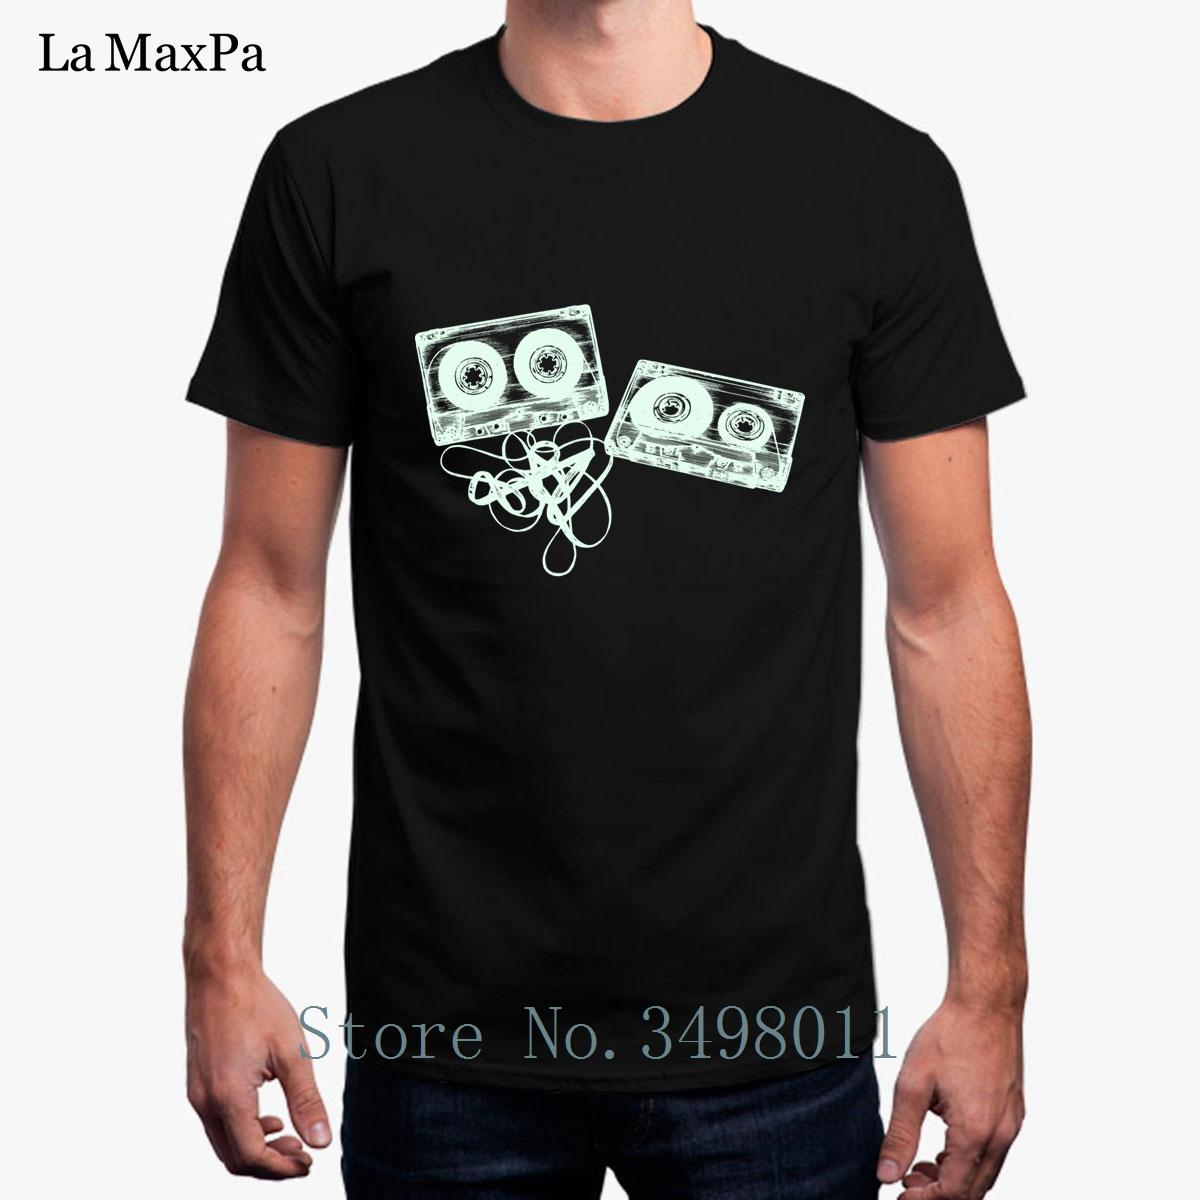 Top Quality Tshirt For Men Old School Music Tapes Clothes Men T-Shirt  O-Neck Summer Short Sleeved T Shirt S-3xl Design Tops